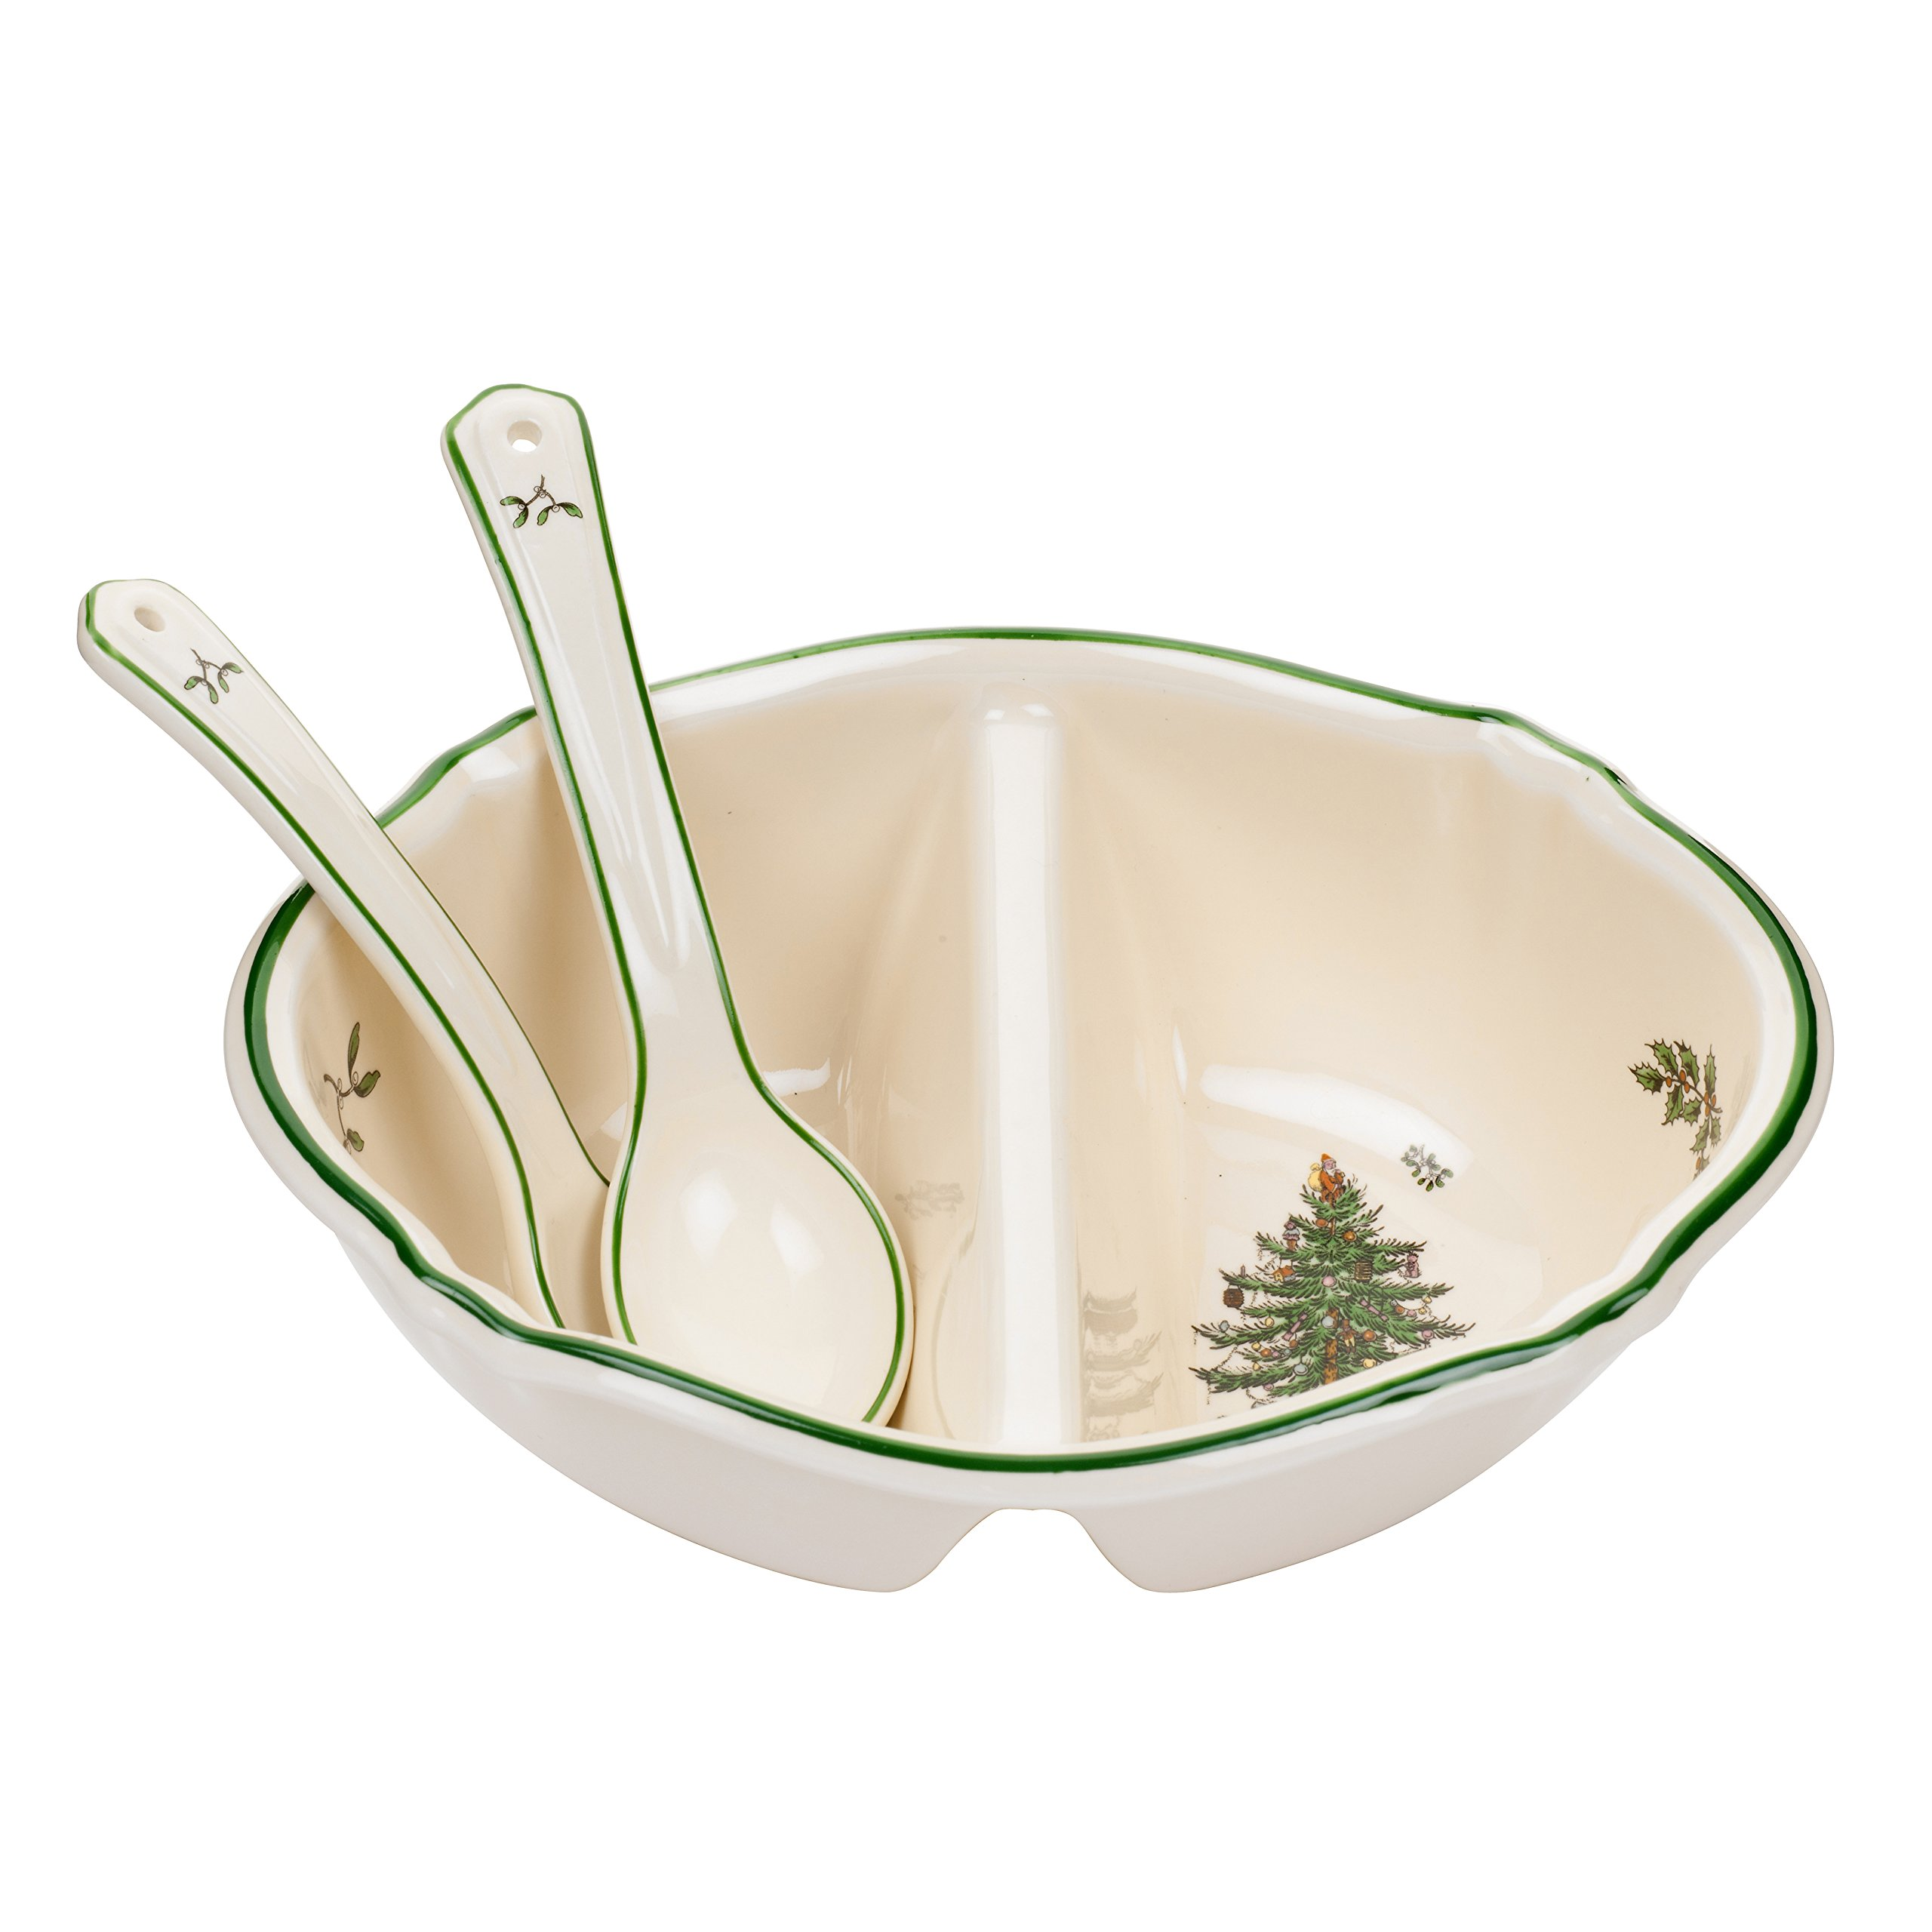 Spode Christmas Tree Divided Serving Dish with 2-Spoons